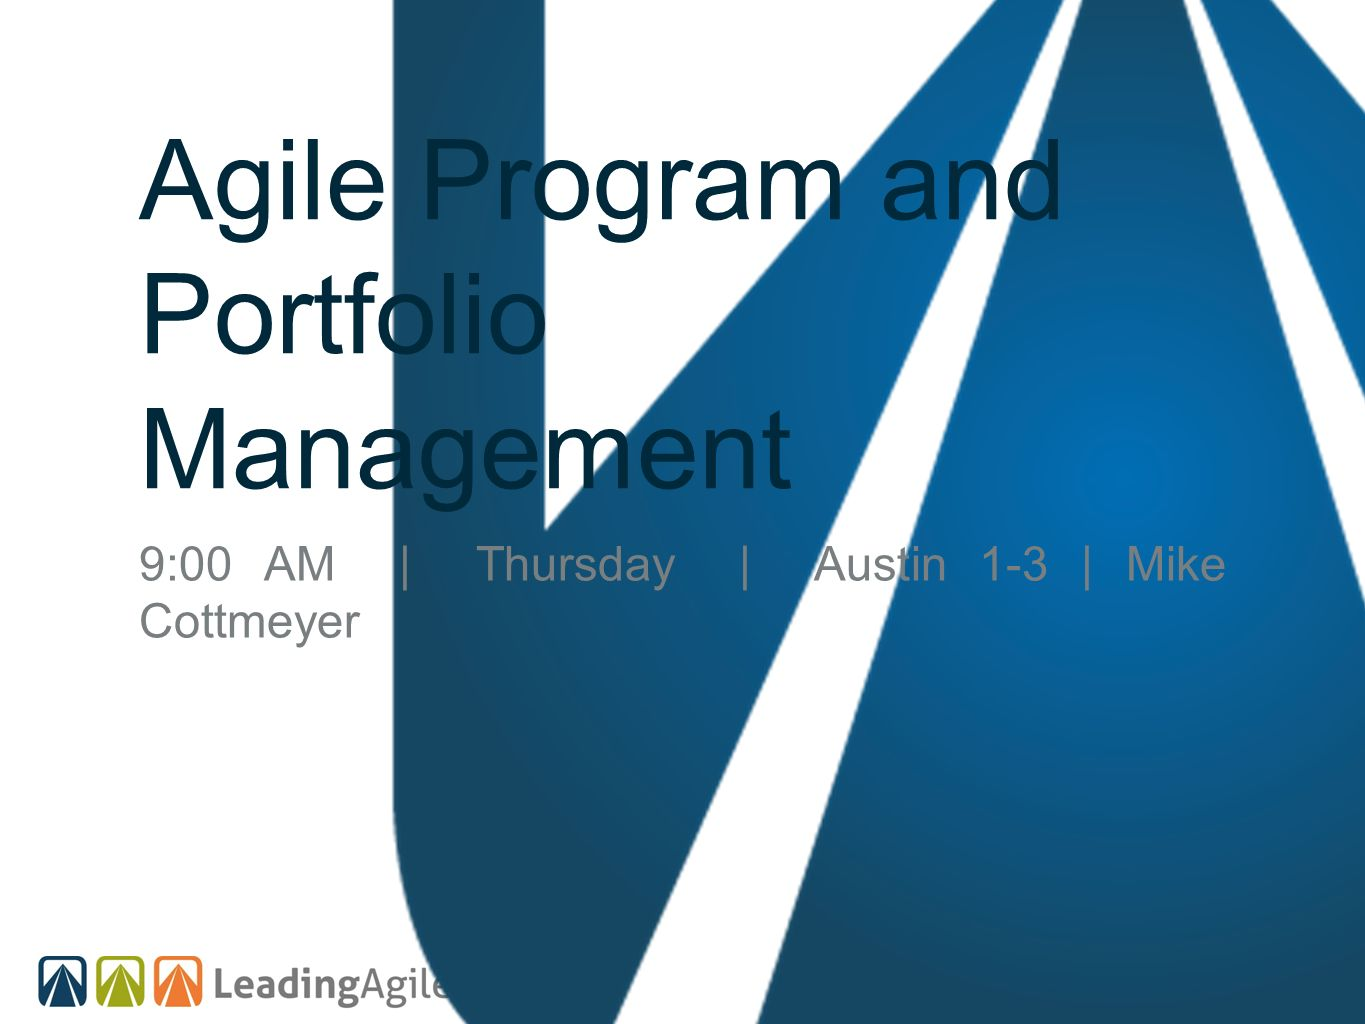 Agile Program and Portfolio Management